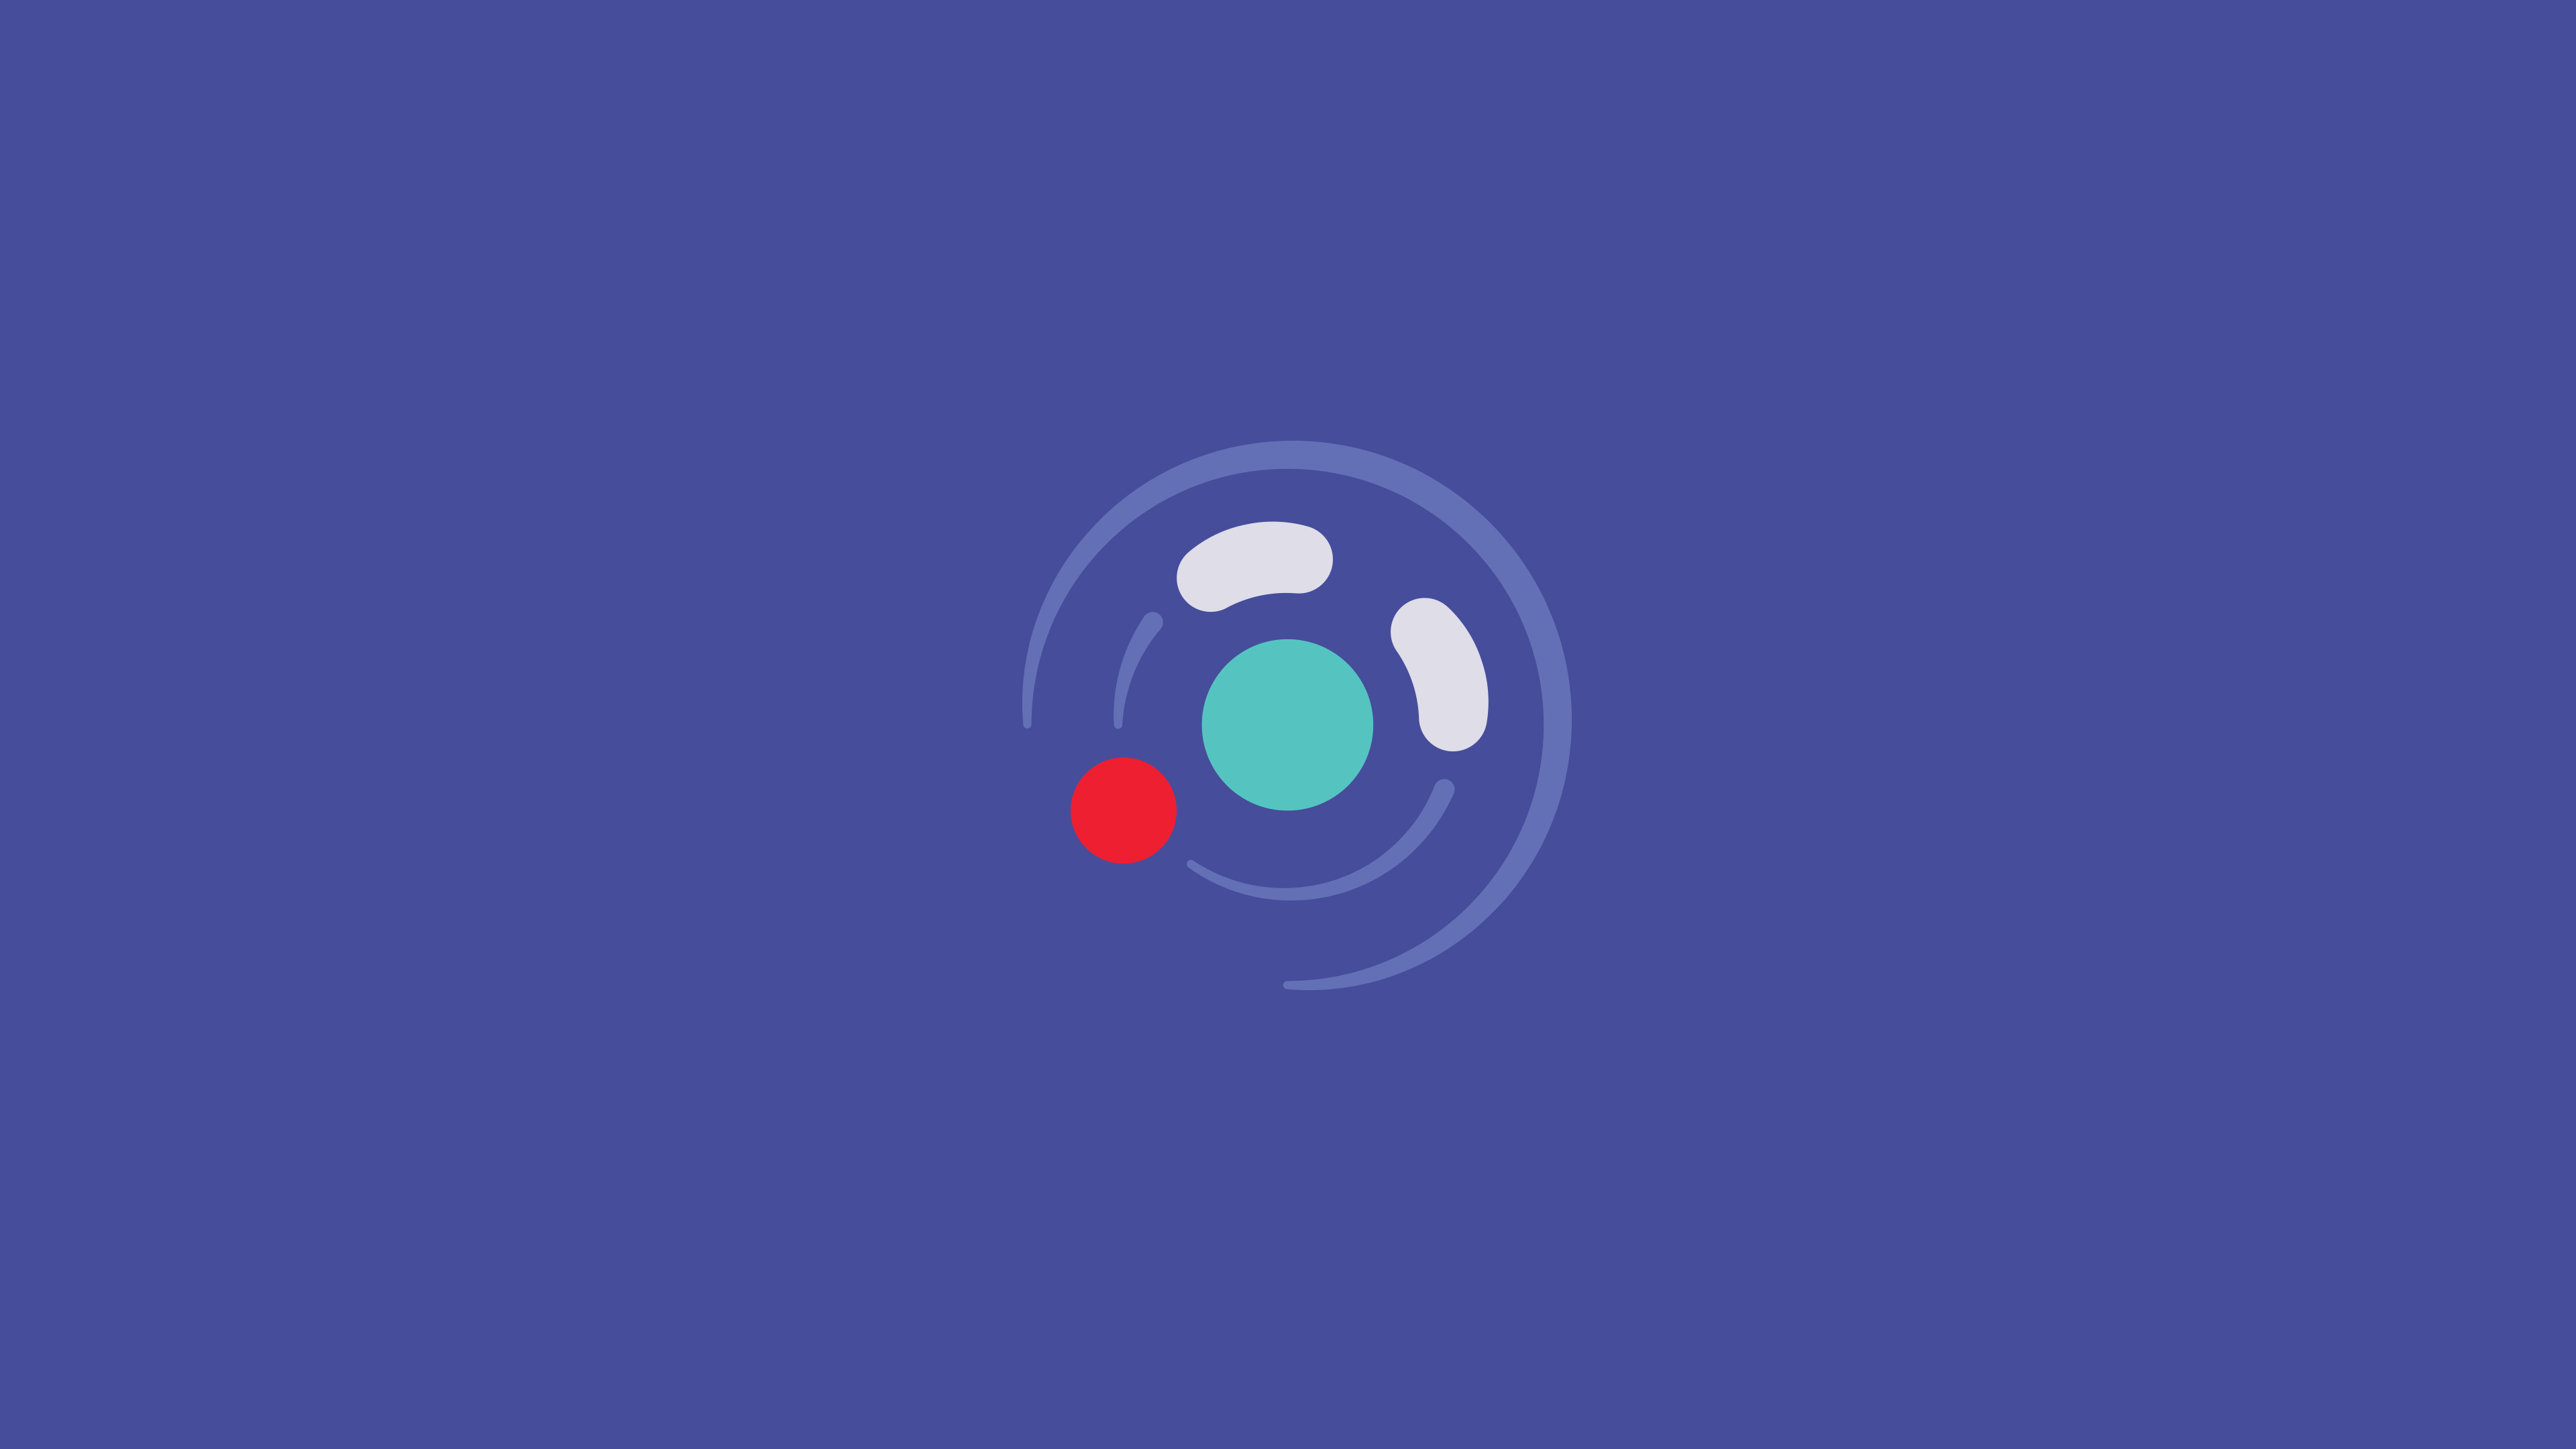 Lord Shiva Hd Wallpapers For Pc Gamecube Controller Minimalism Hd Logo 4k Wallpapers